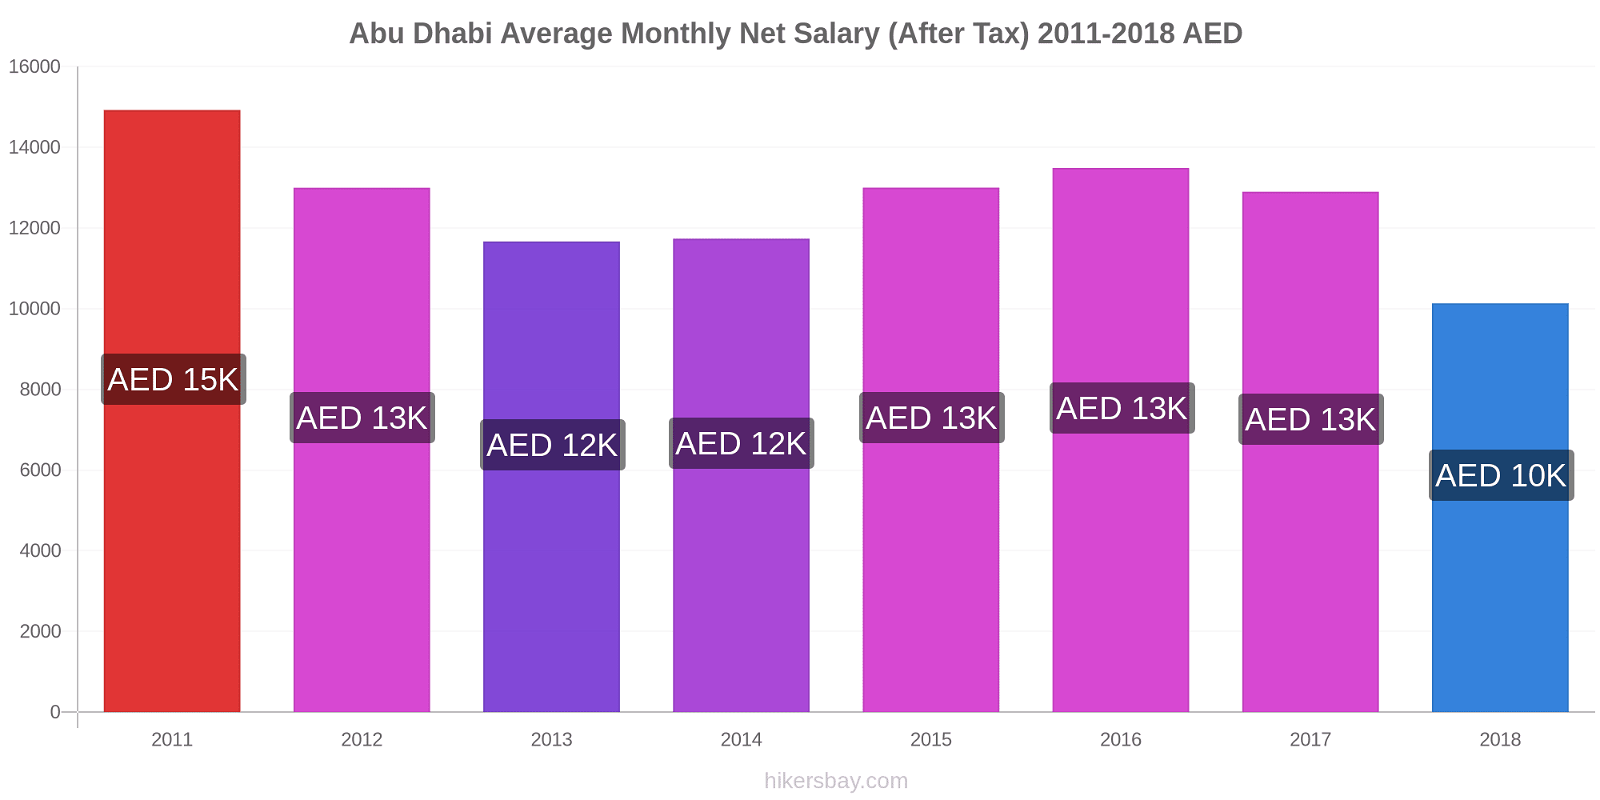 Abu Dhabi price changes Average Monthly Net Salary (After Tax) hikersbay.com